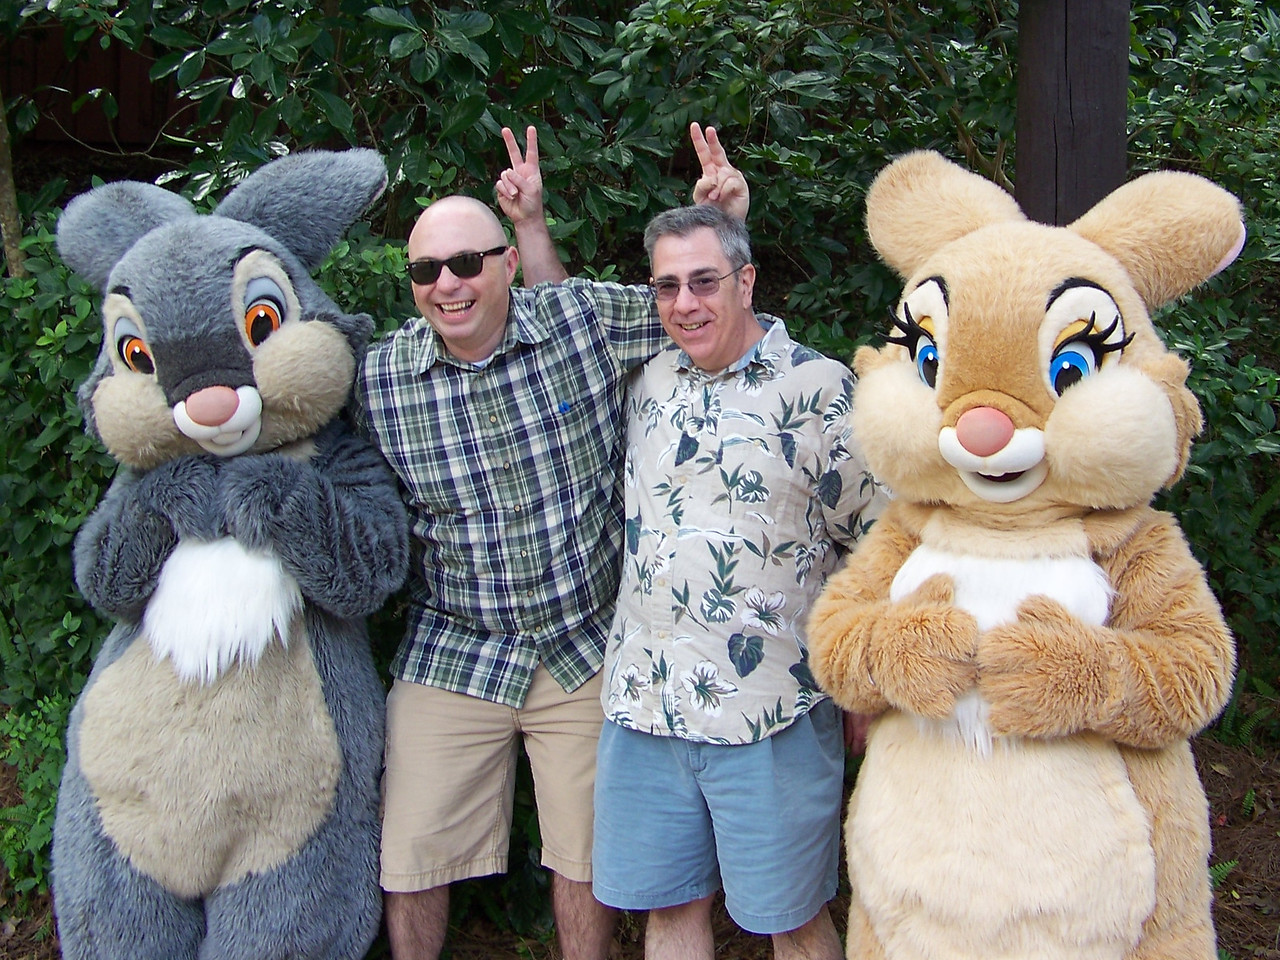 In Camp Mickey-Minnie, Dave and Pat pose with Thumper (at left) and Miss Bunny from Bambi.  Bunny ears for all!<br /> [Disney's Animal Kingdom]